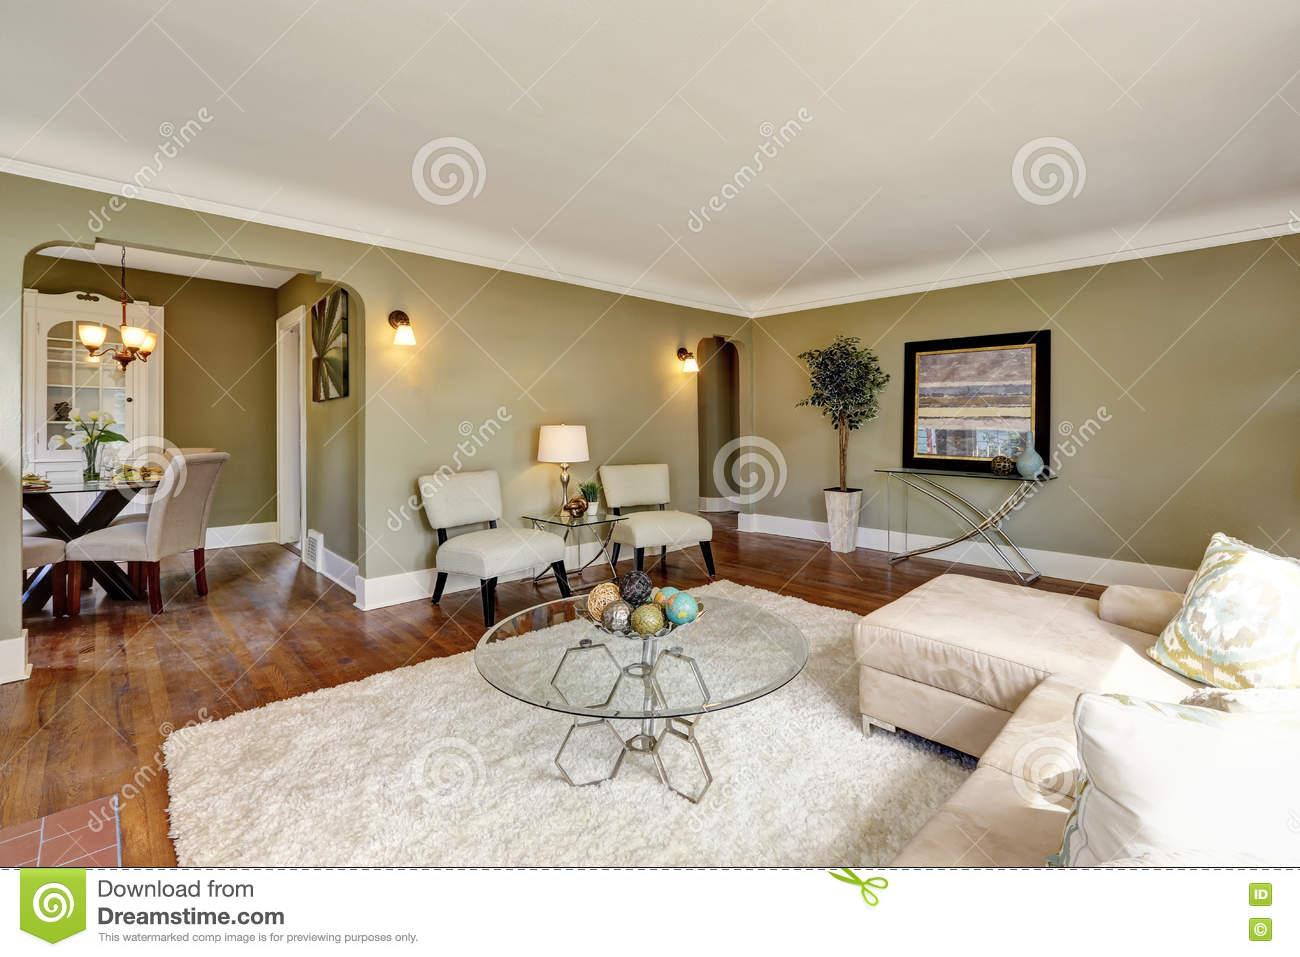 craftsman house living room interior design stock photo image of